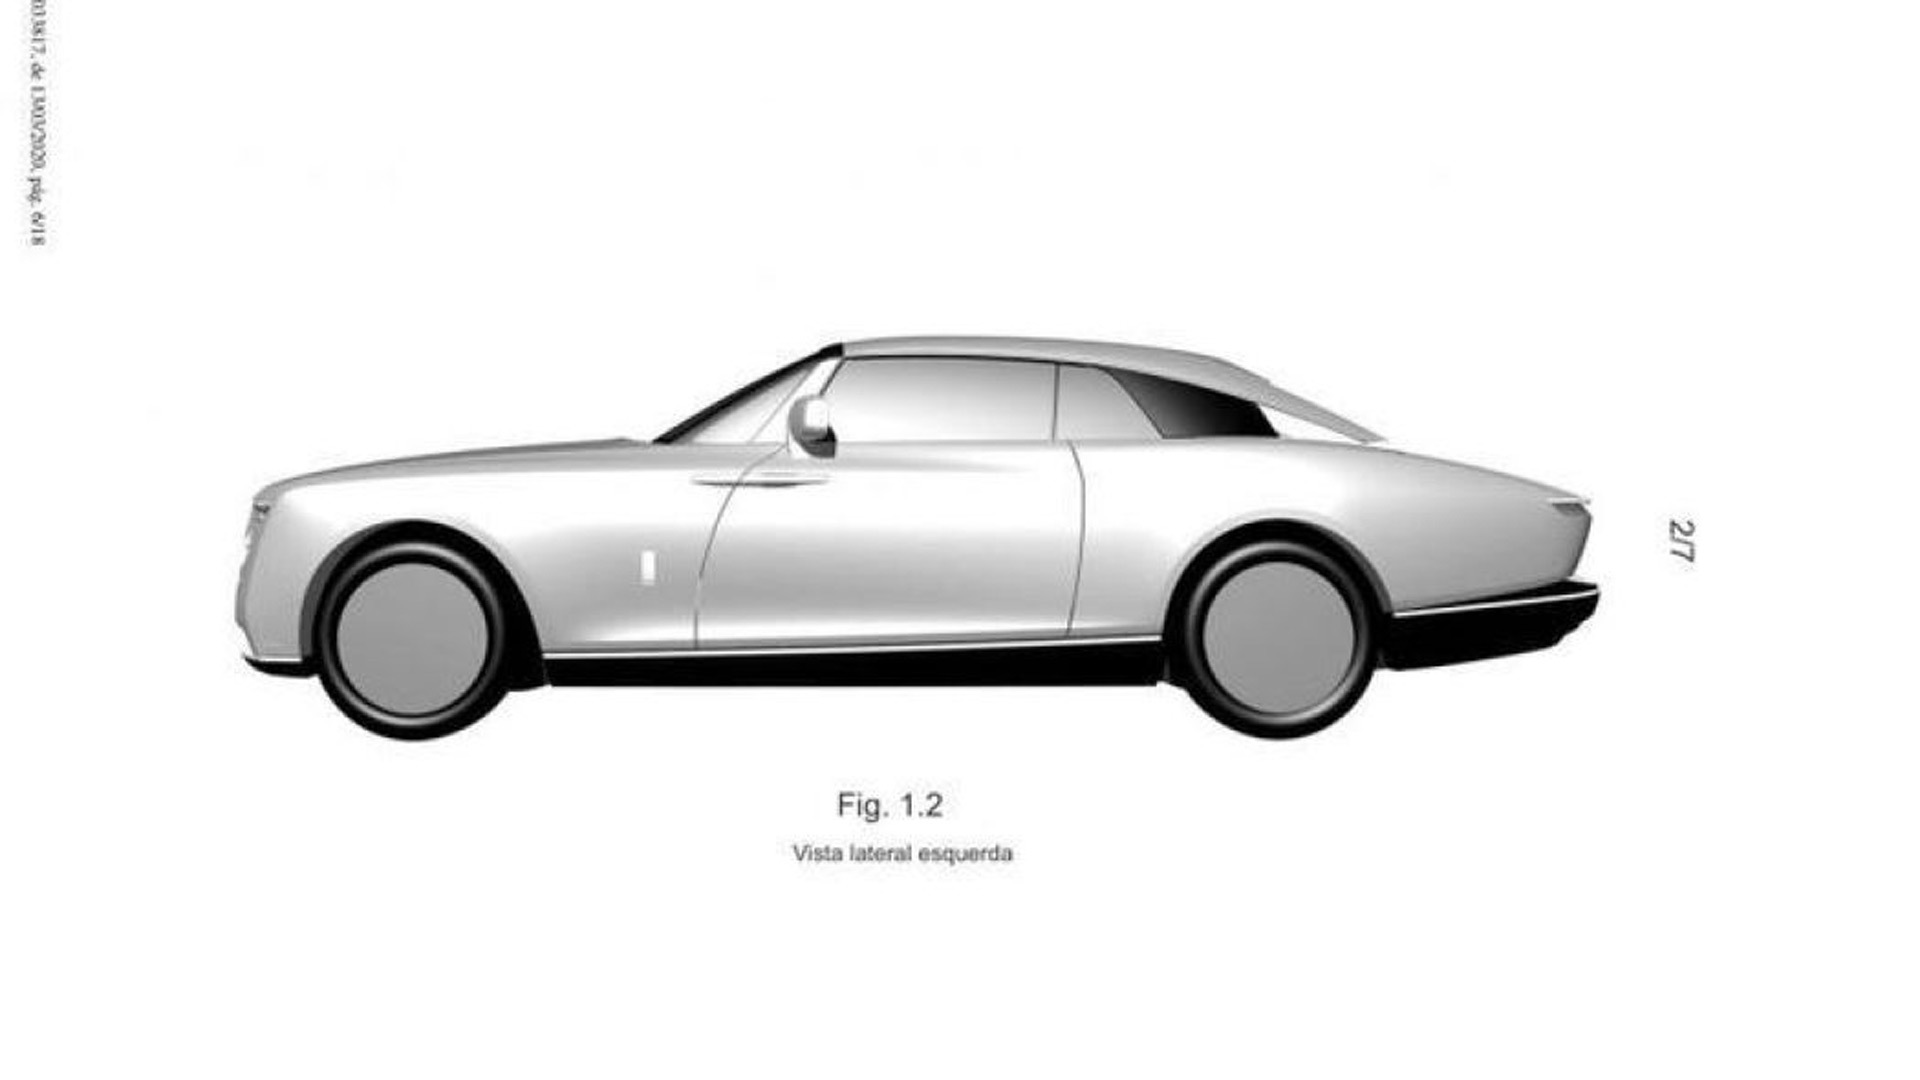 Patent drawings for mystery Rolls-Royce model - Photo credit: Taycan EV Forum